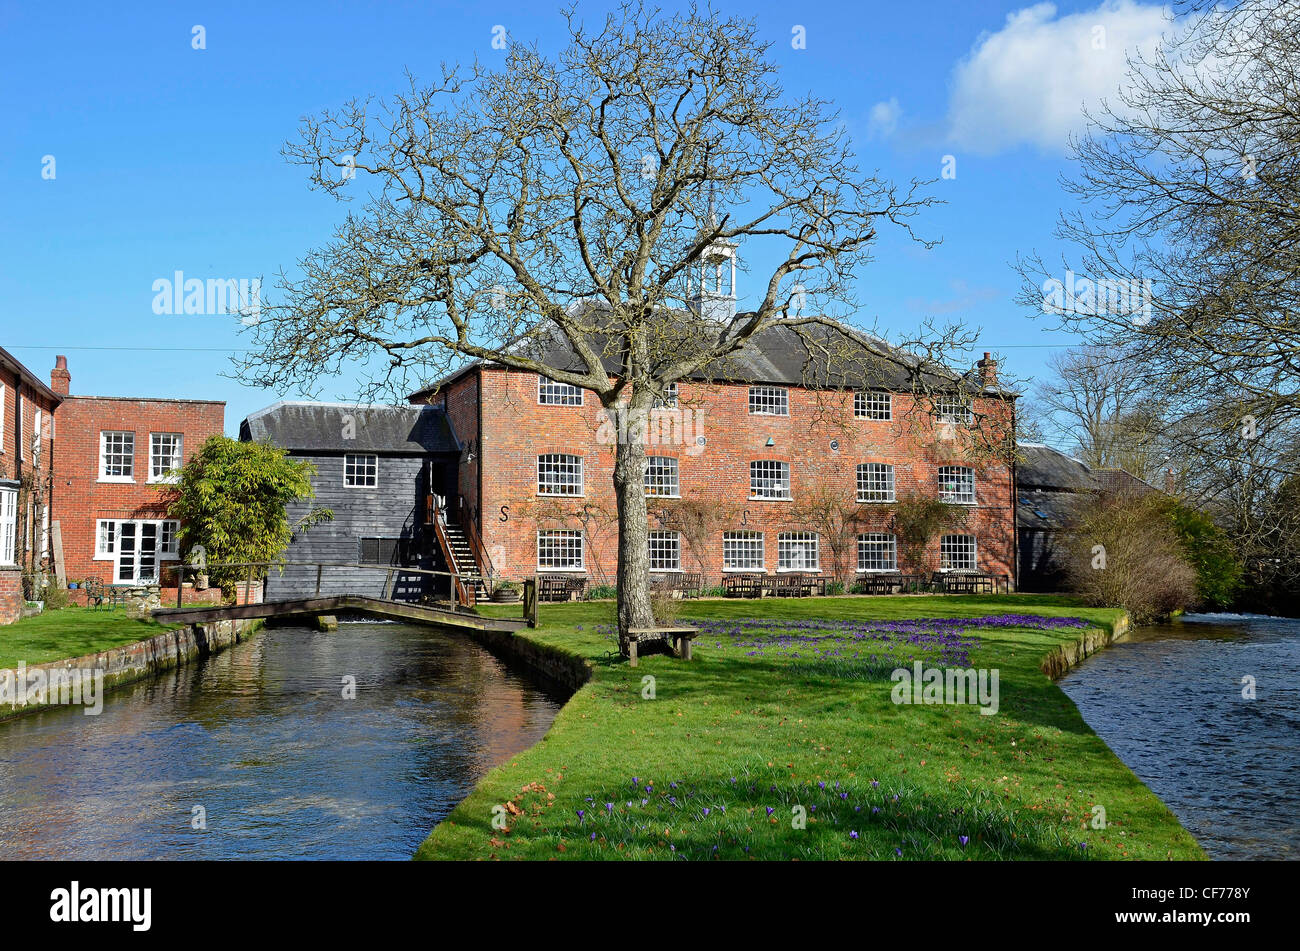 Whitchurch Silk Mill hampshire - Stock Image